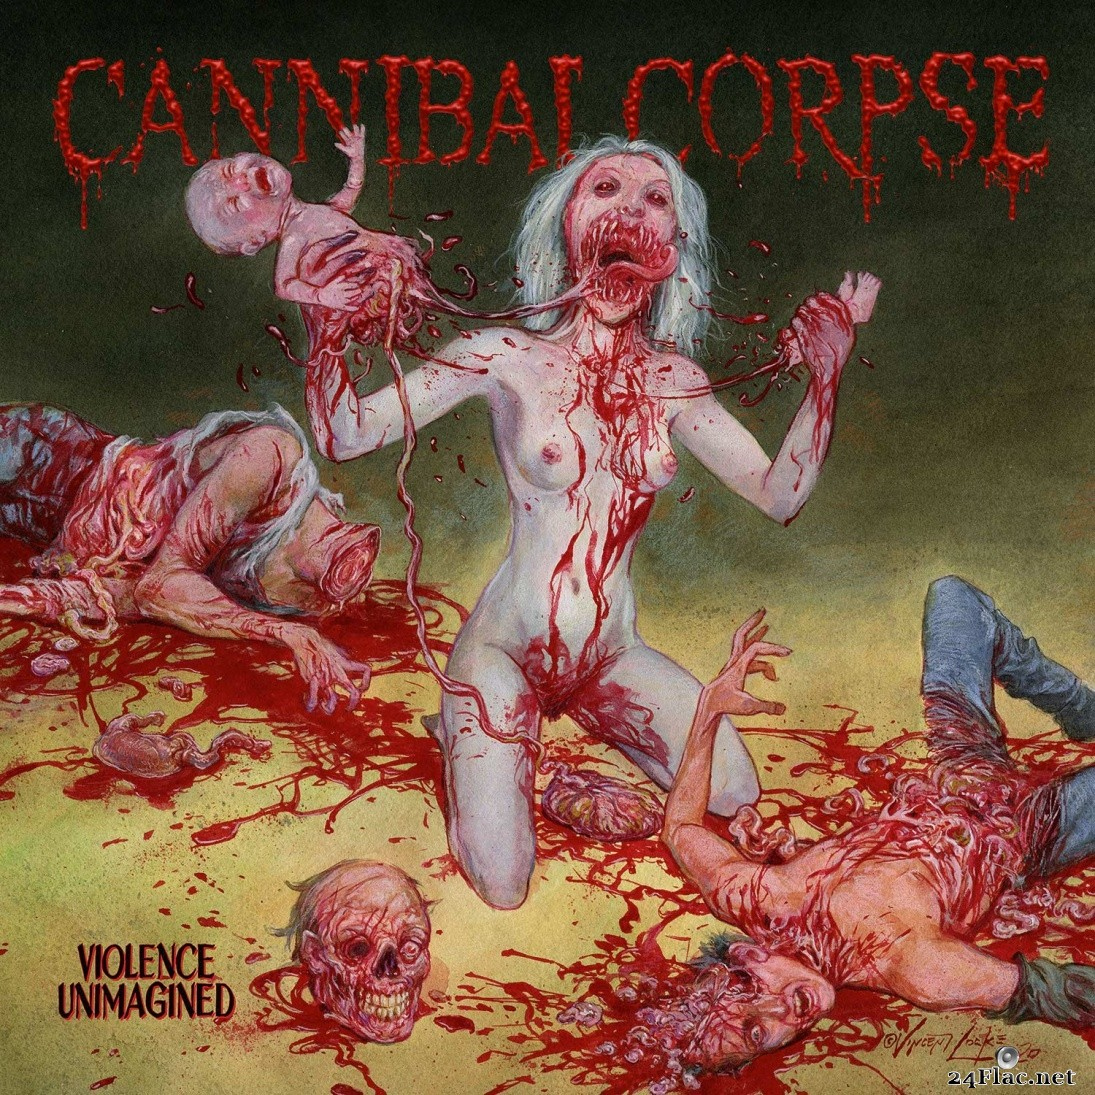 Cannibal Corpse - Violence Unimagined (2021) FLAC